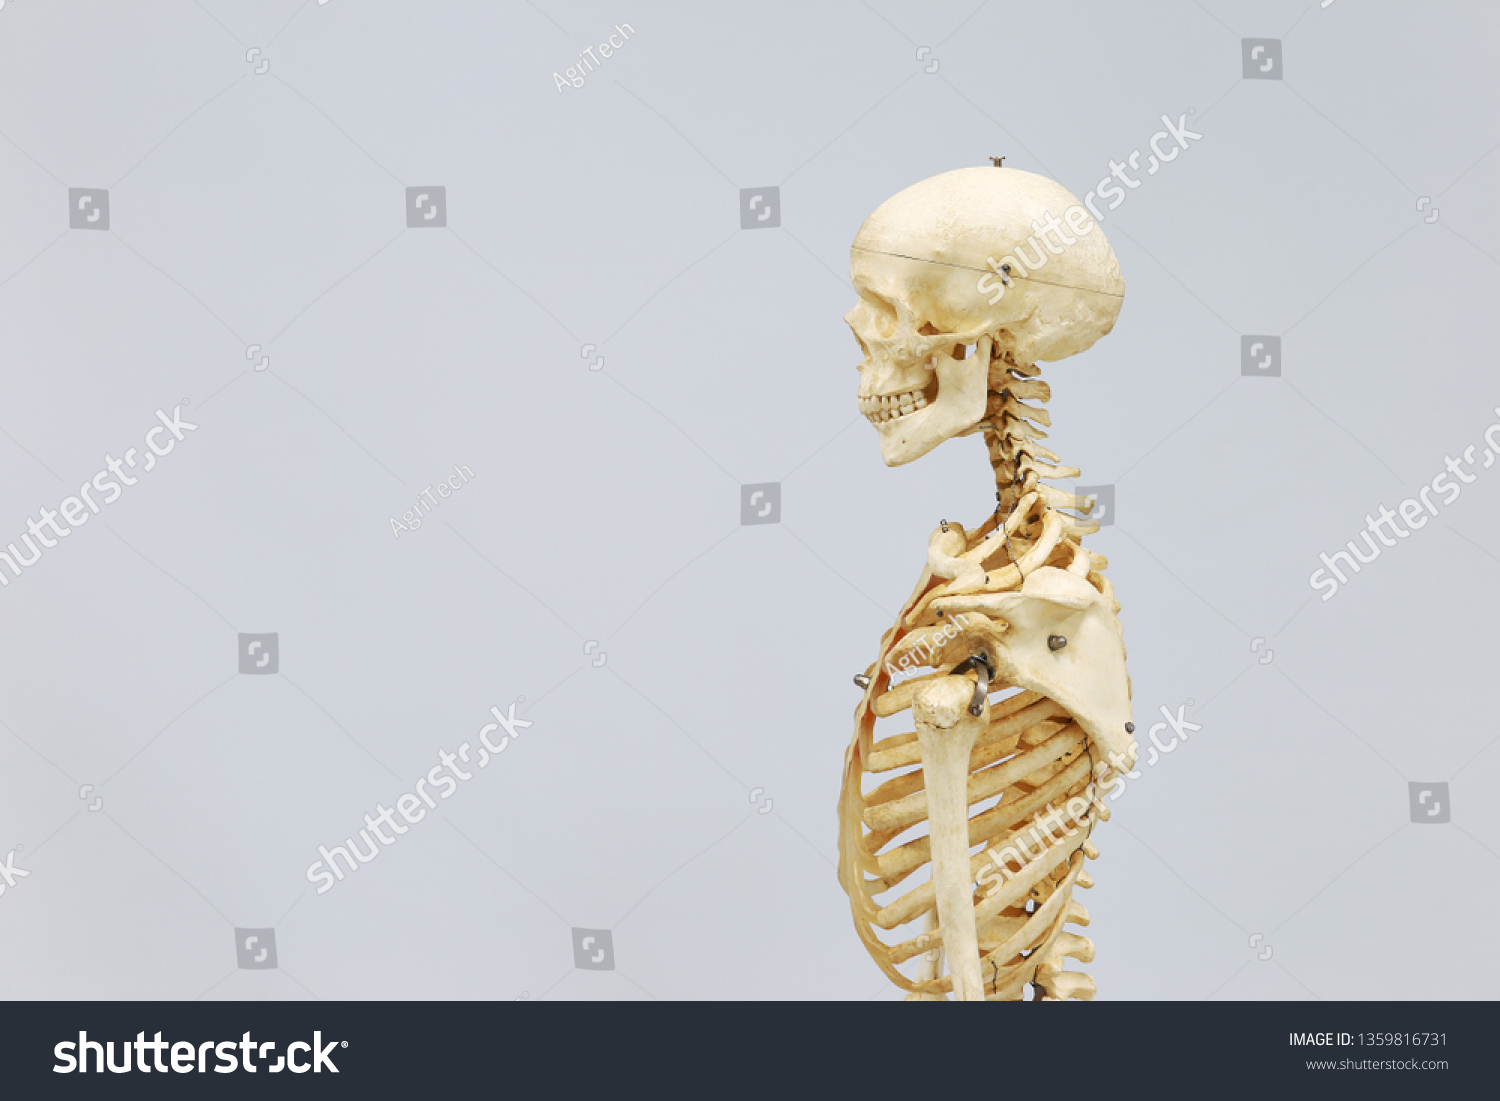 side view of the bones of the head neck and upper thorax  human skeleton  model